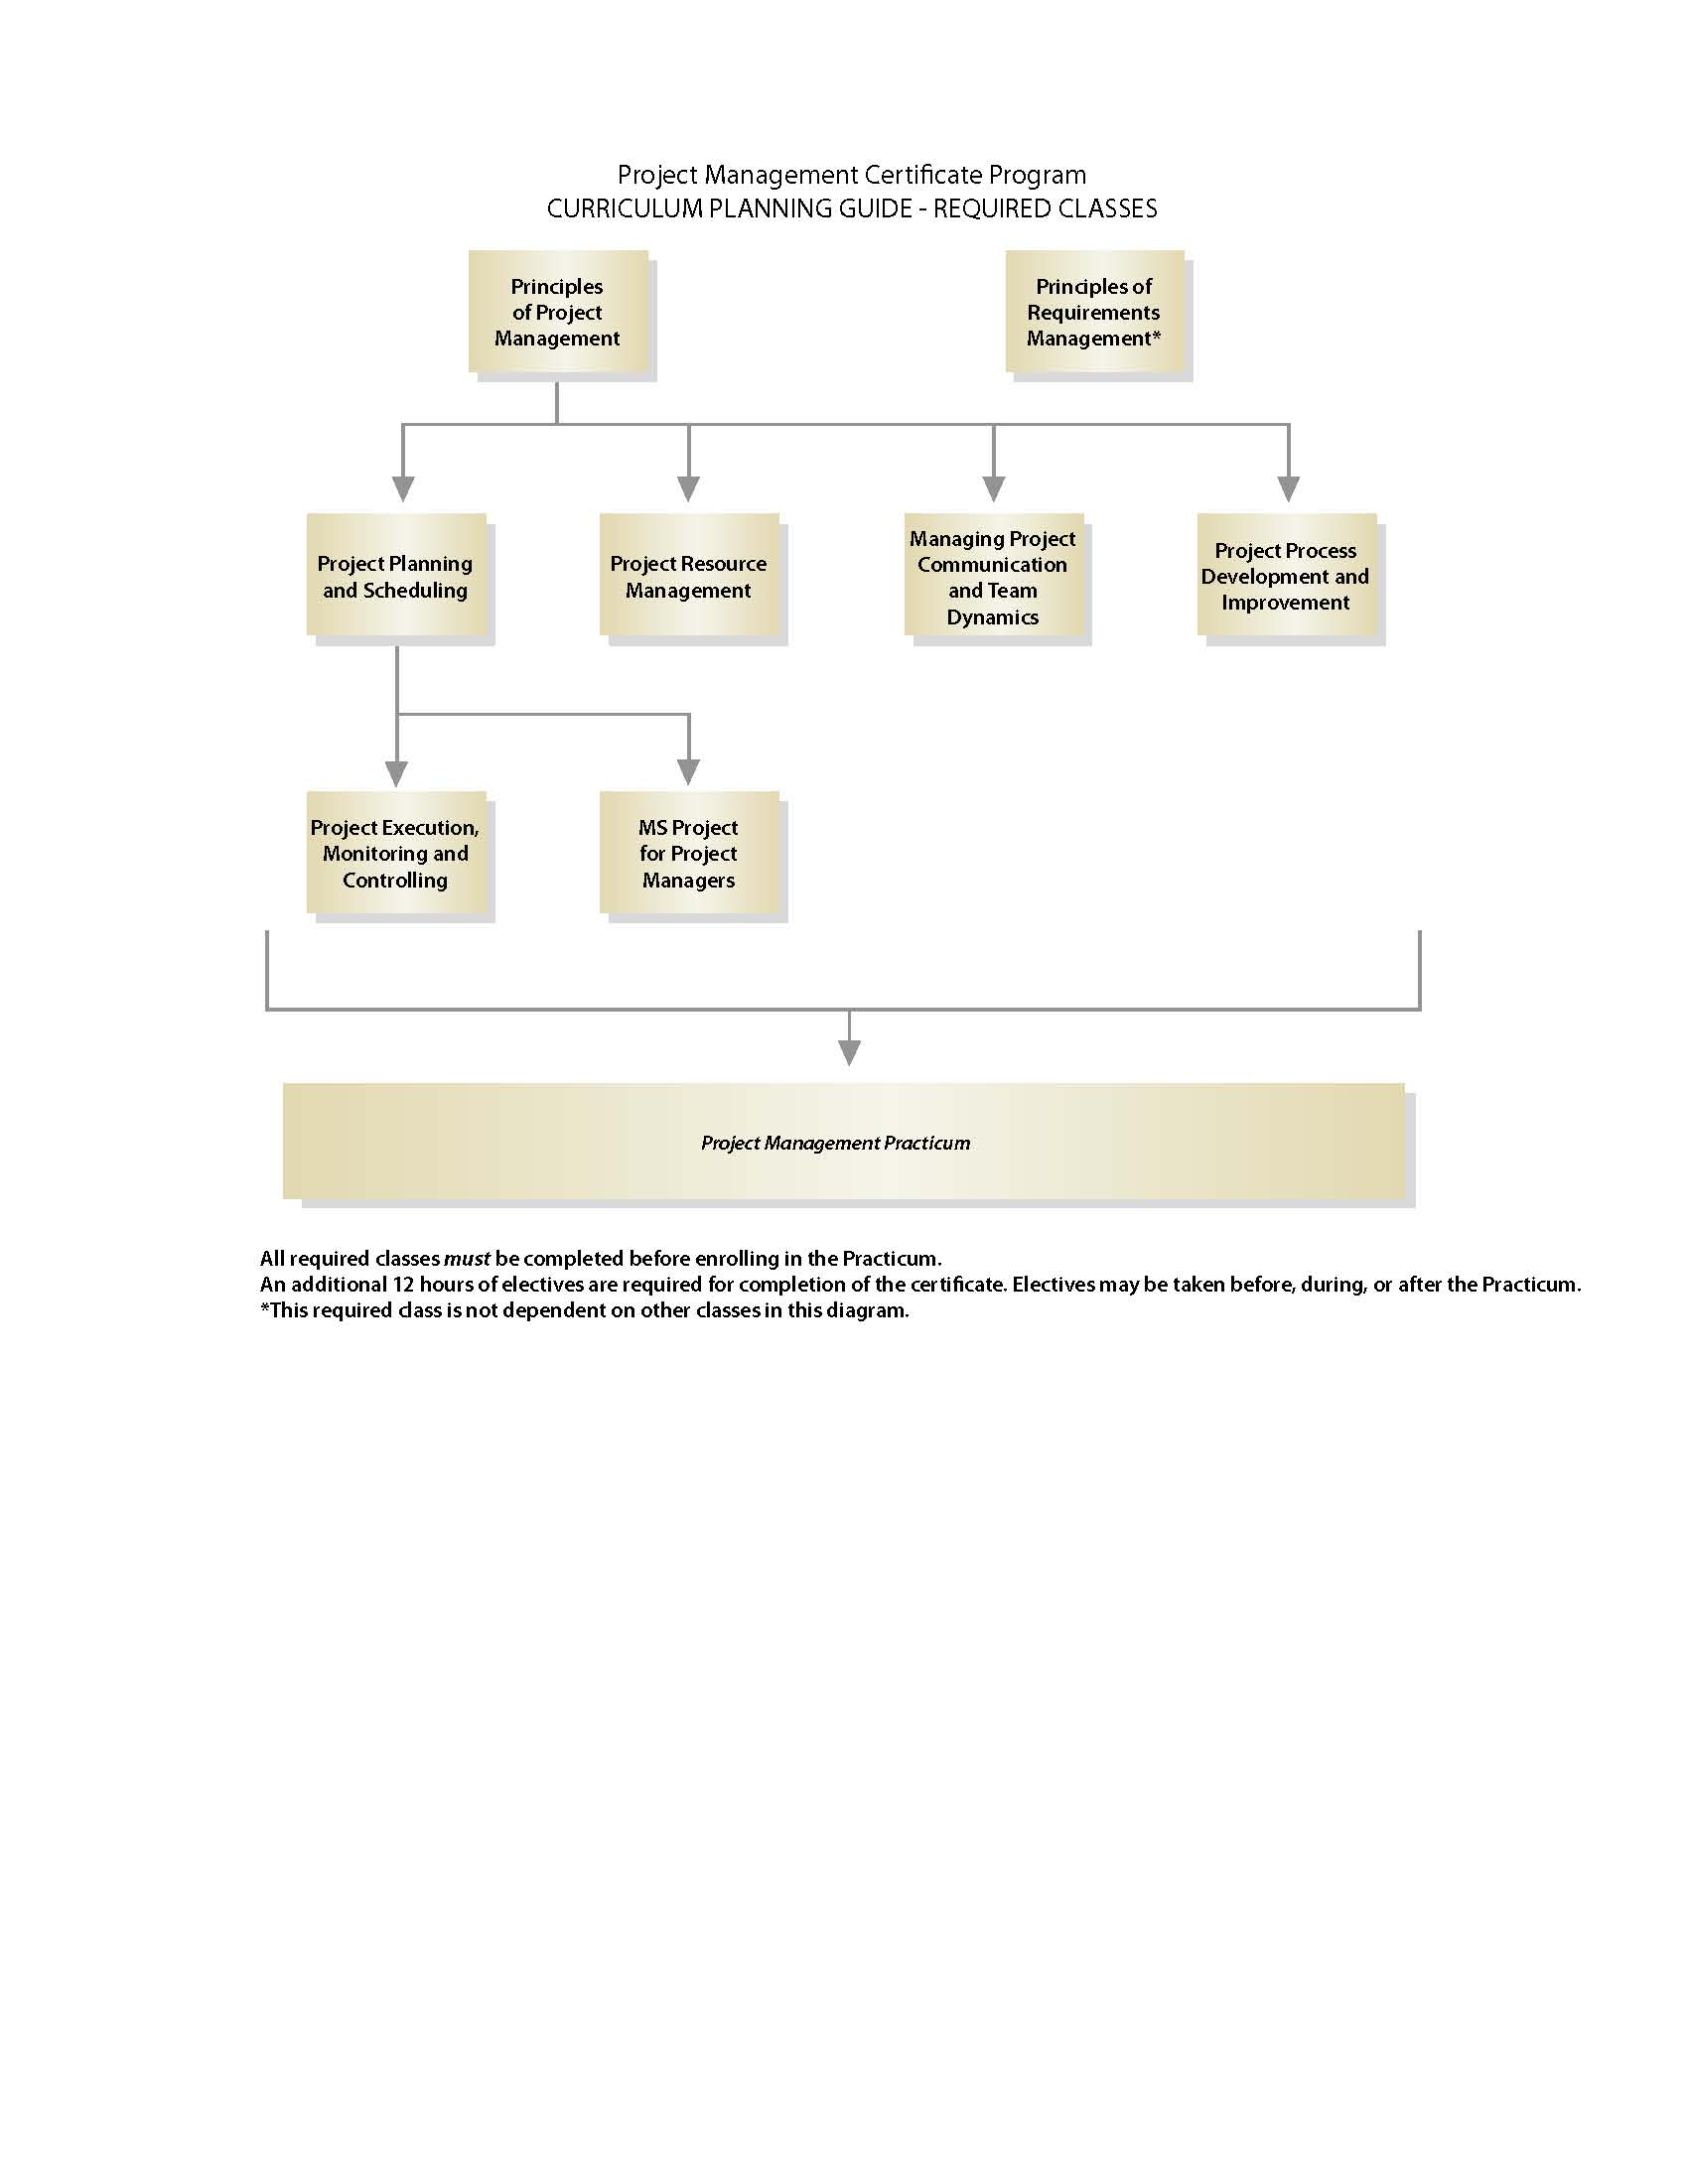 Overview continuing education planning guide flow chart 1betcityfo Gallery